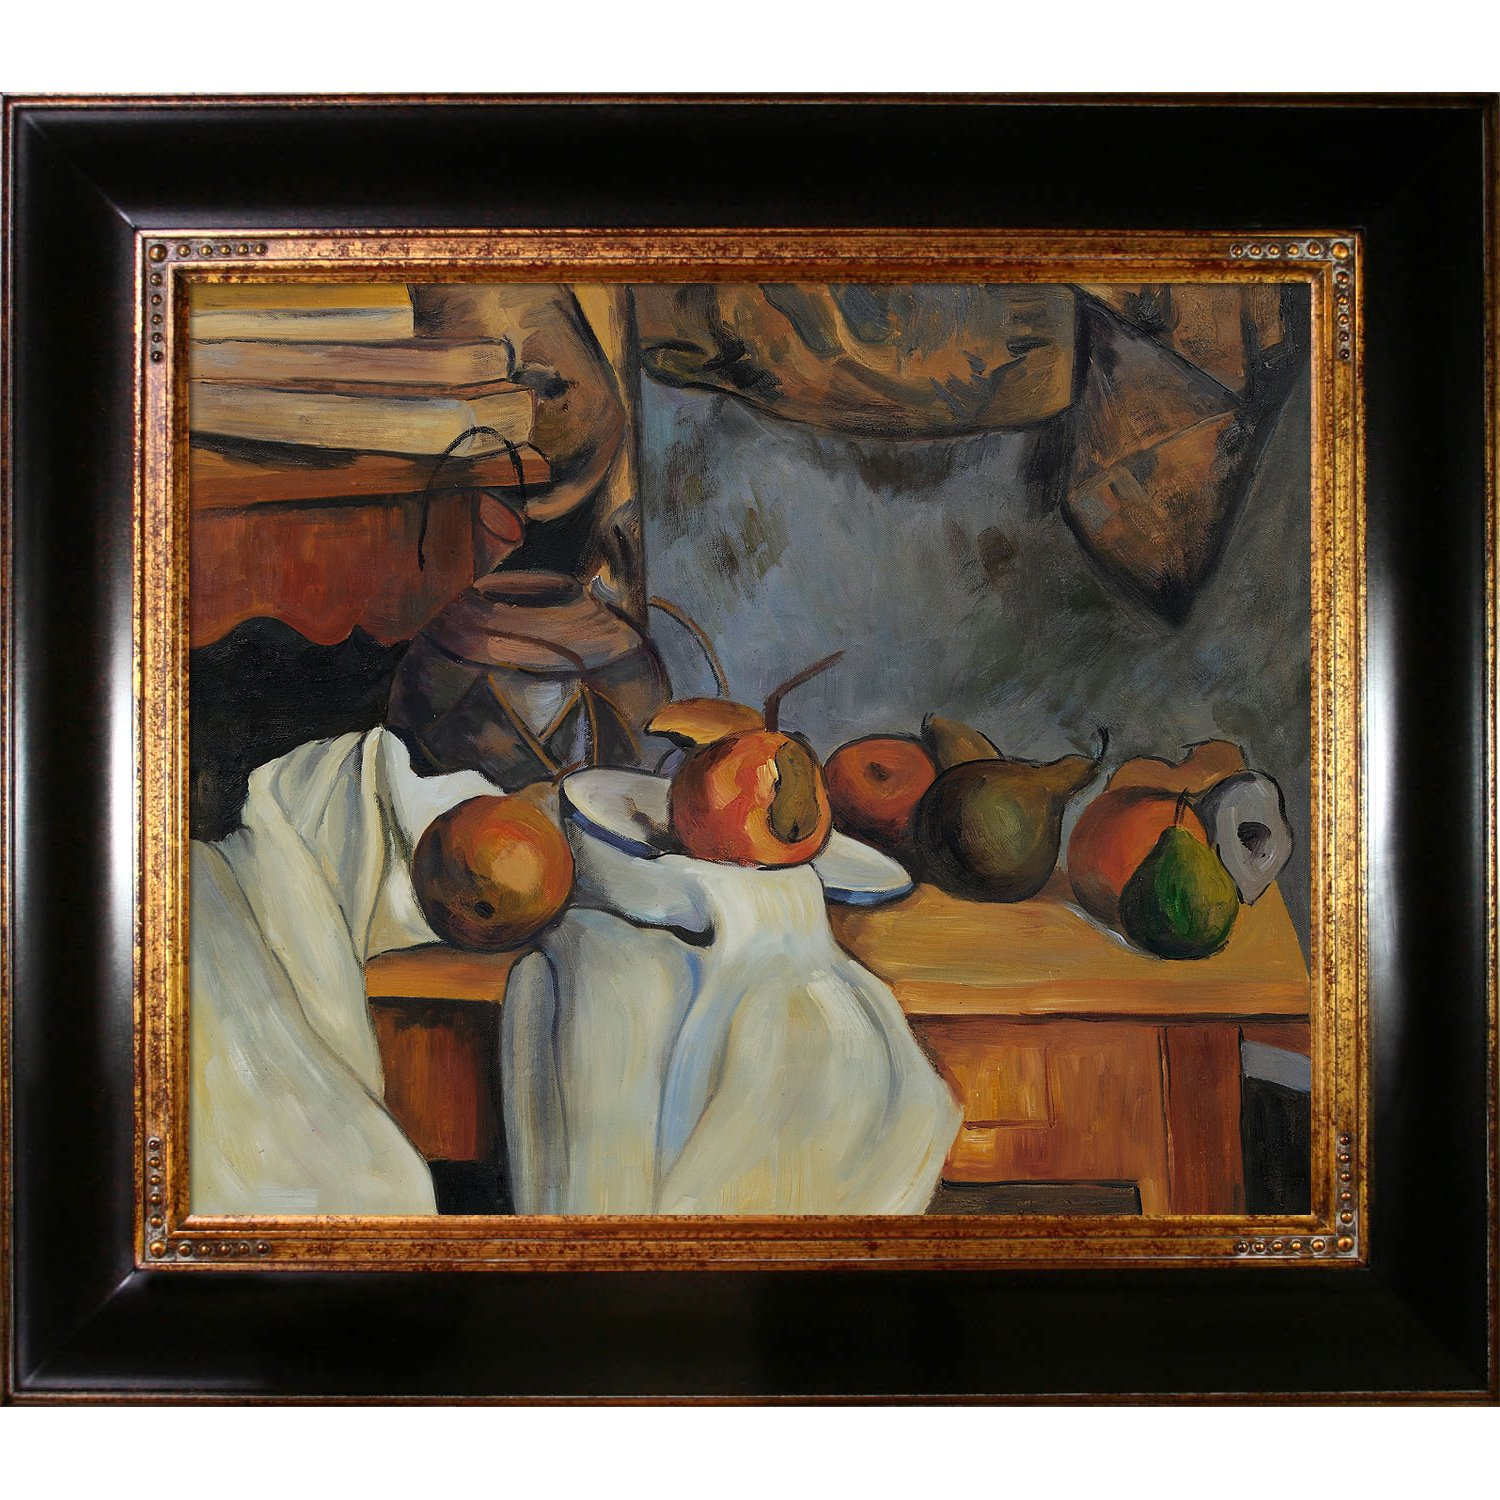 overstockArt CZ957-FR-240G20X24 Cezanne Ginger Pot with Pomegranate and Pears with Opulent Frame Dark Stained Wood with Gold Trim